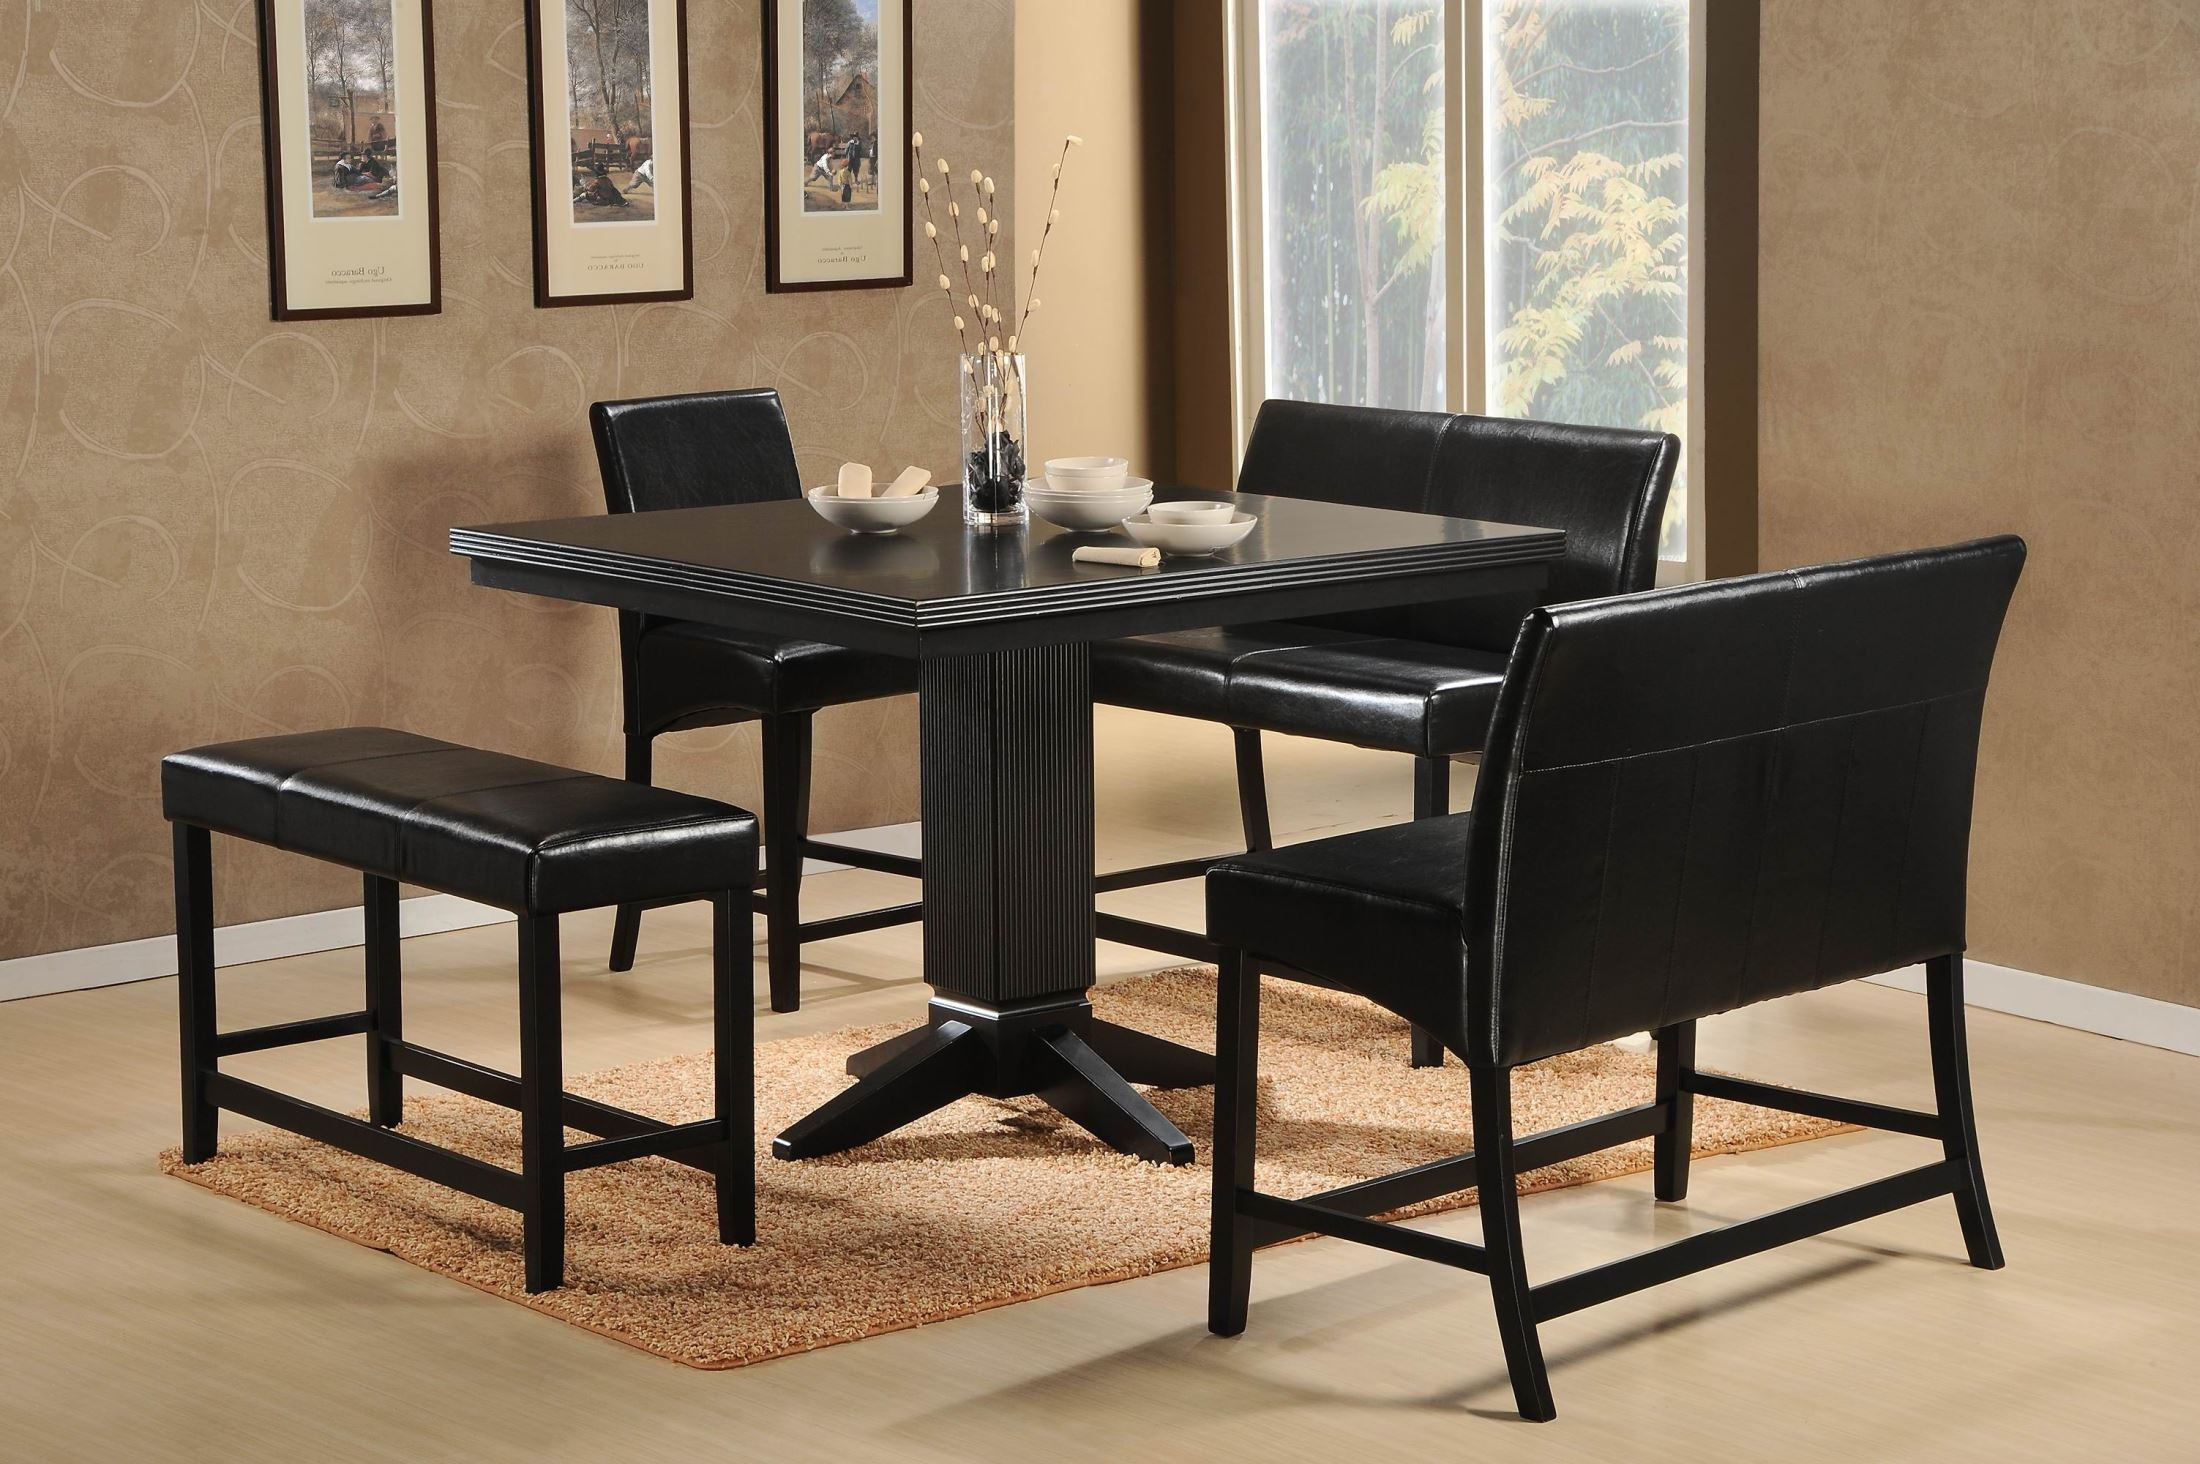 Counter Height Nook Table : Papario nook Counter Height Dining Table from Homelegance (5351-36 ...